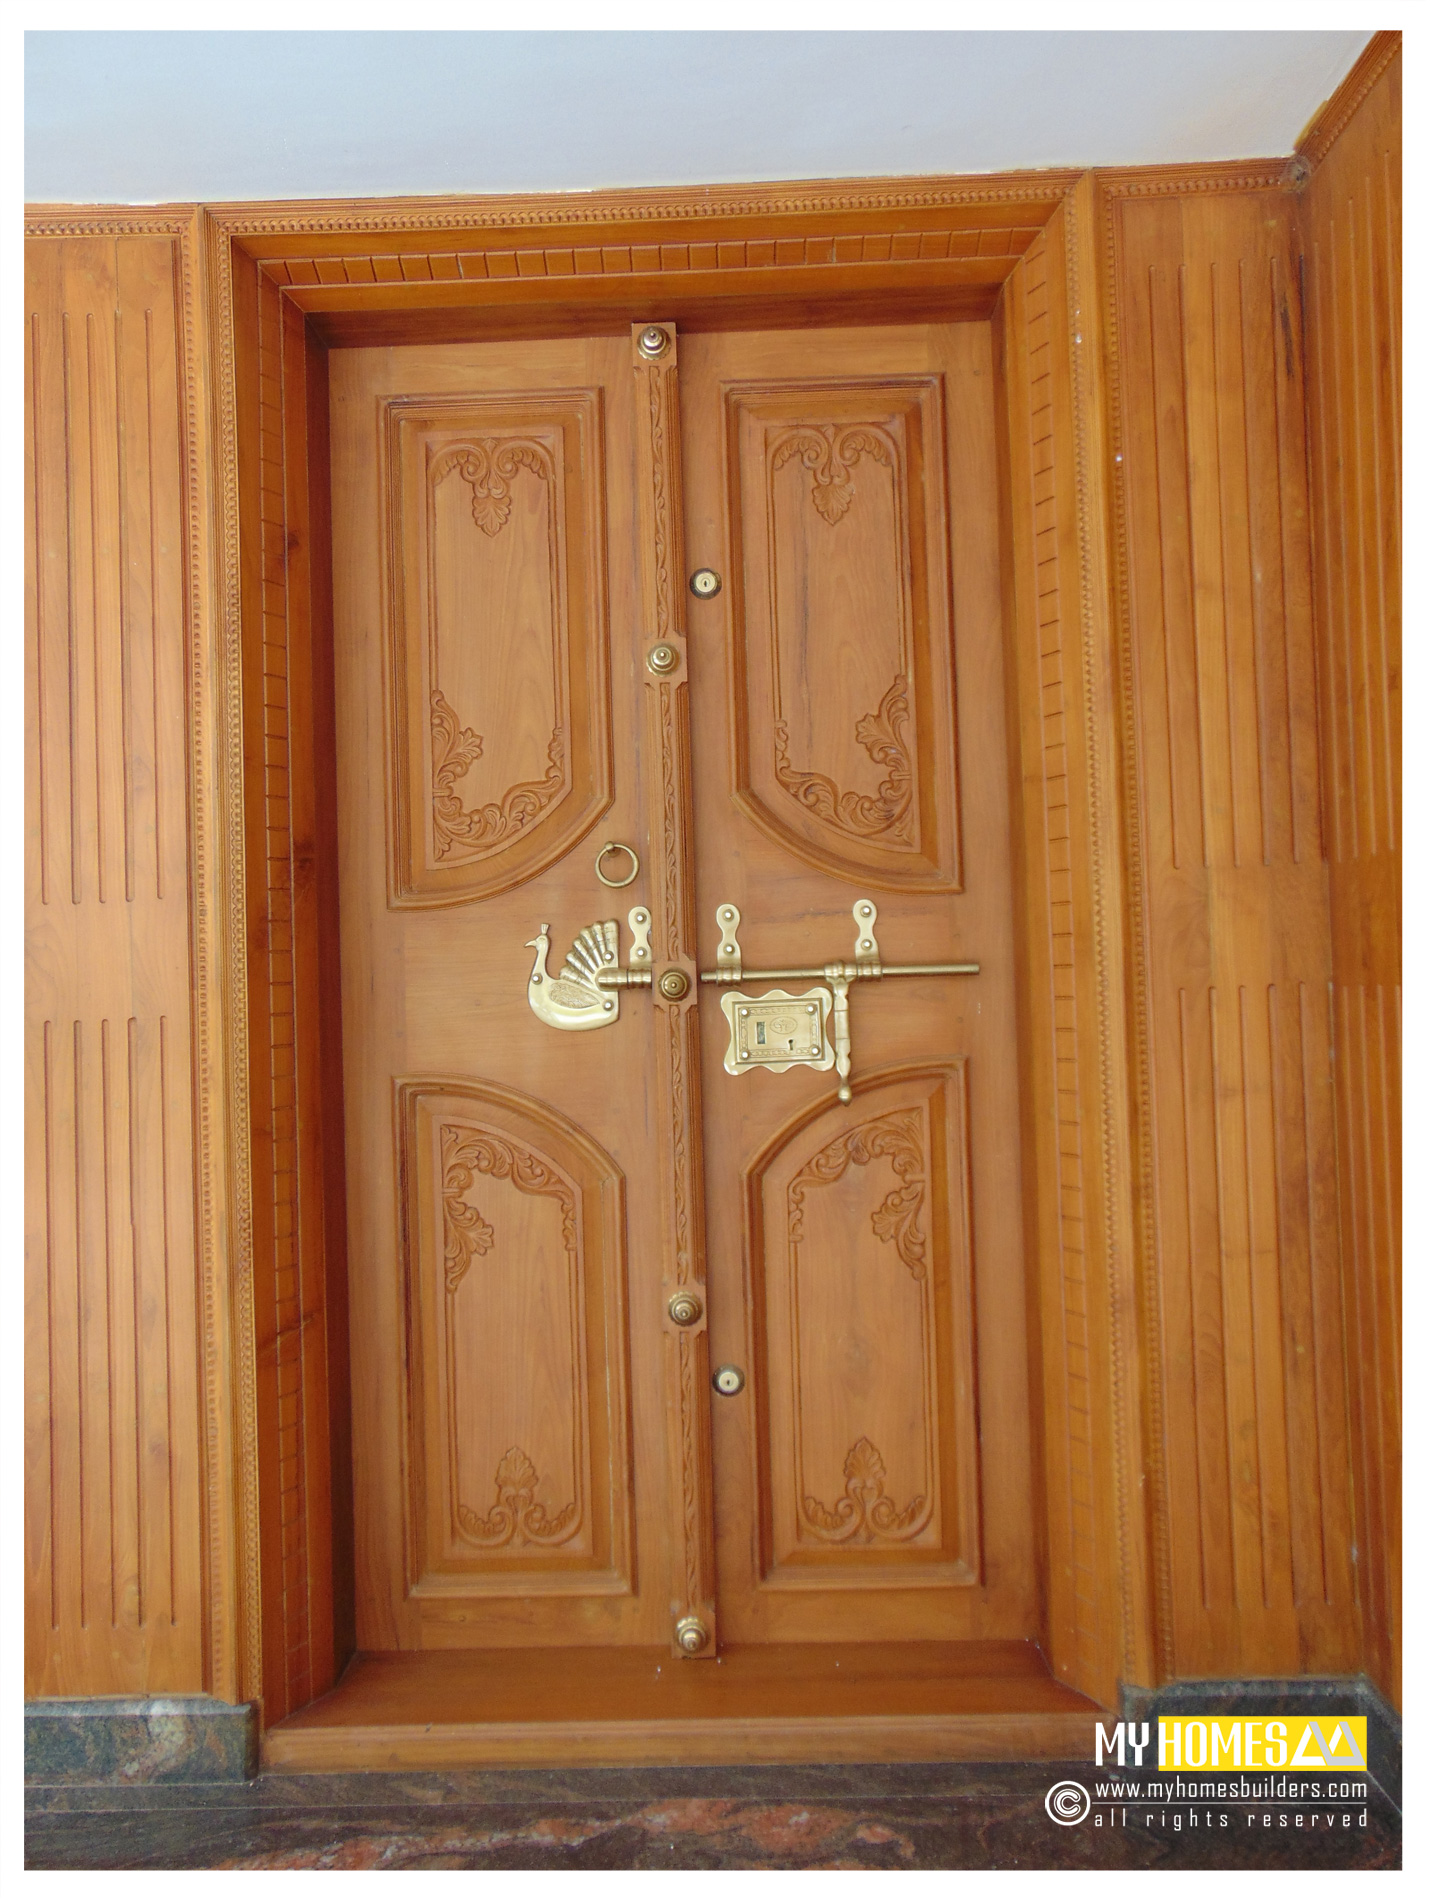 New idea for homes main door designs in kerala india for Indian house main door designs